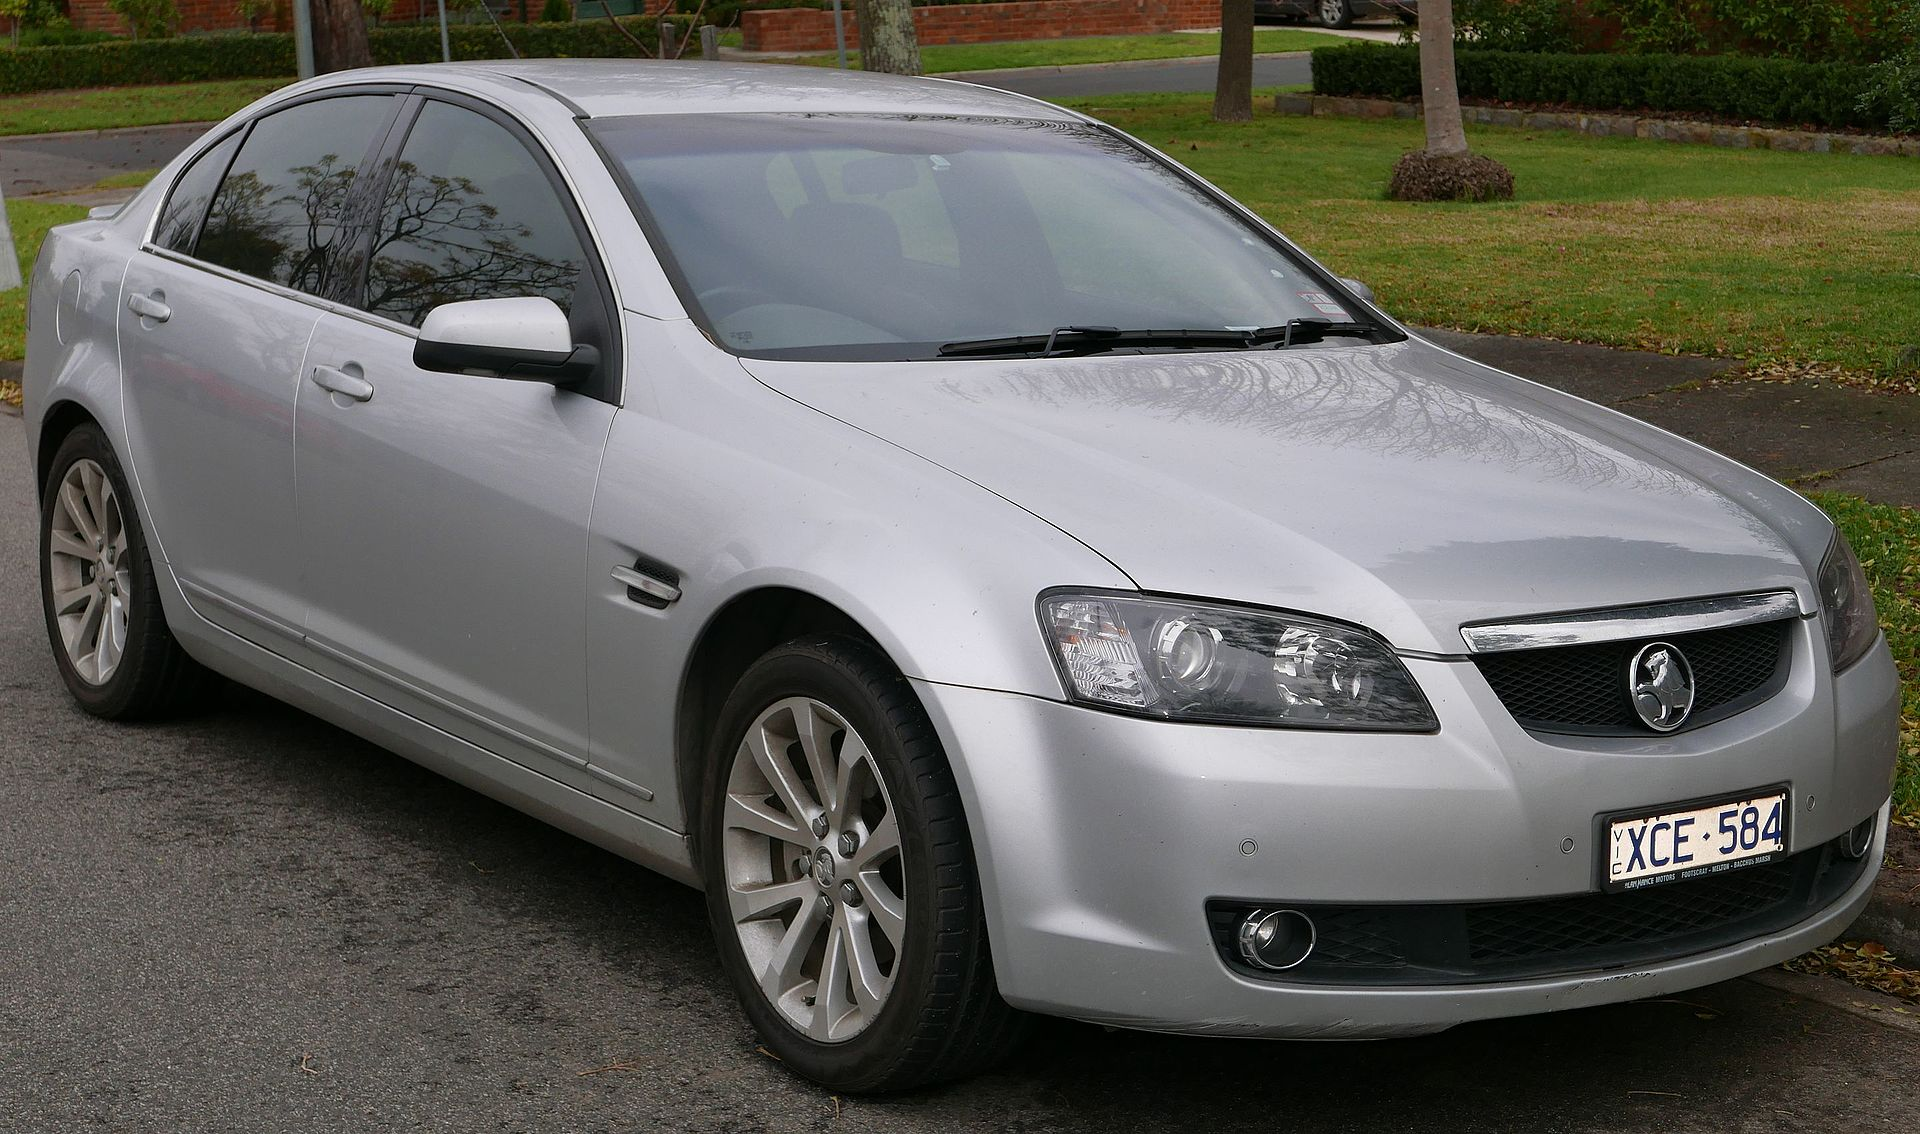 Vf commodore owners manual download